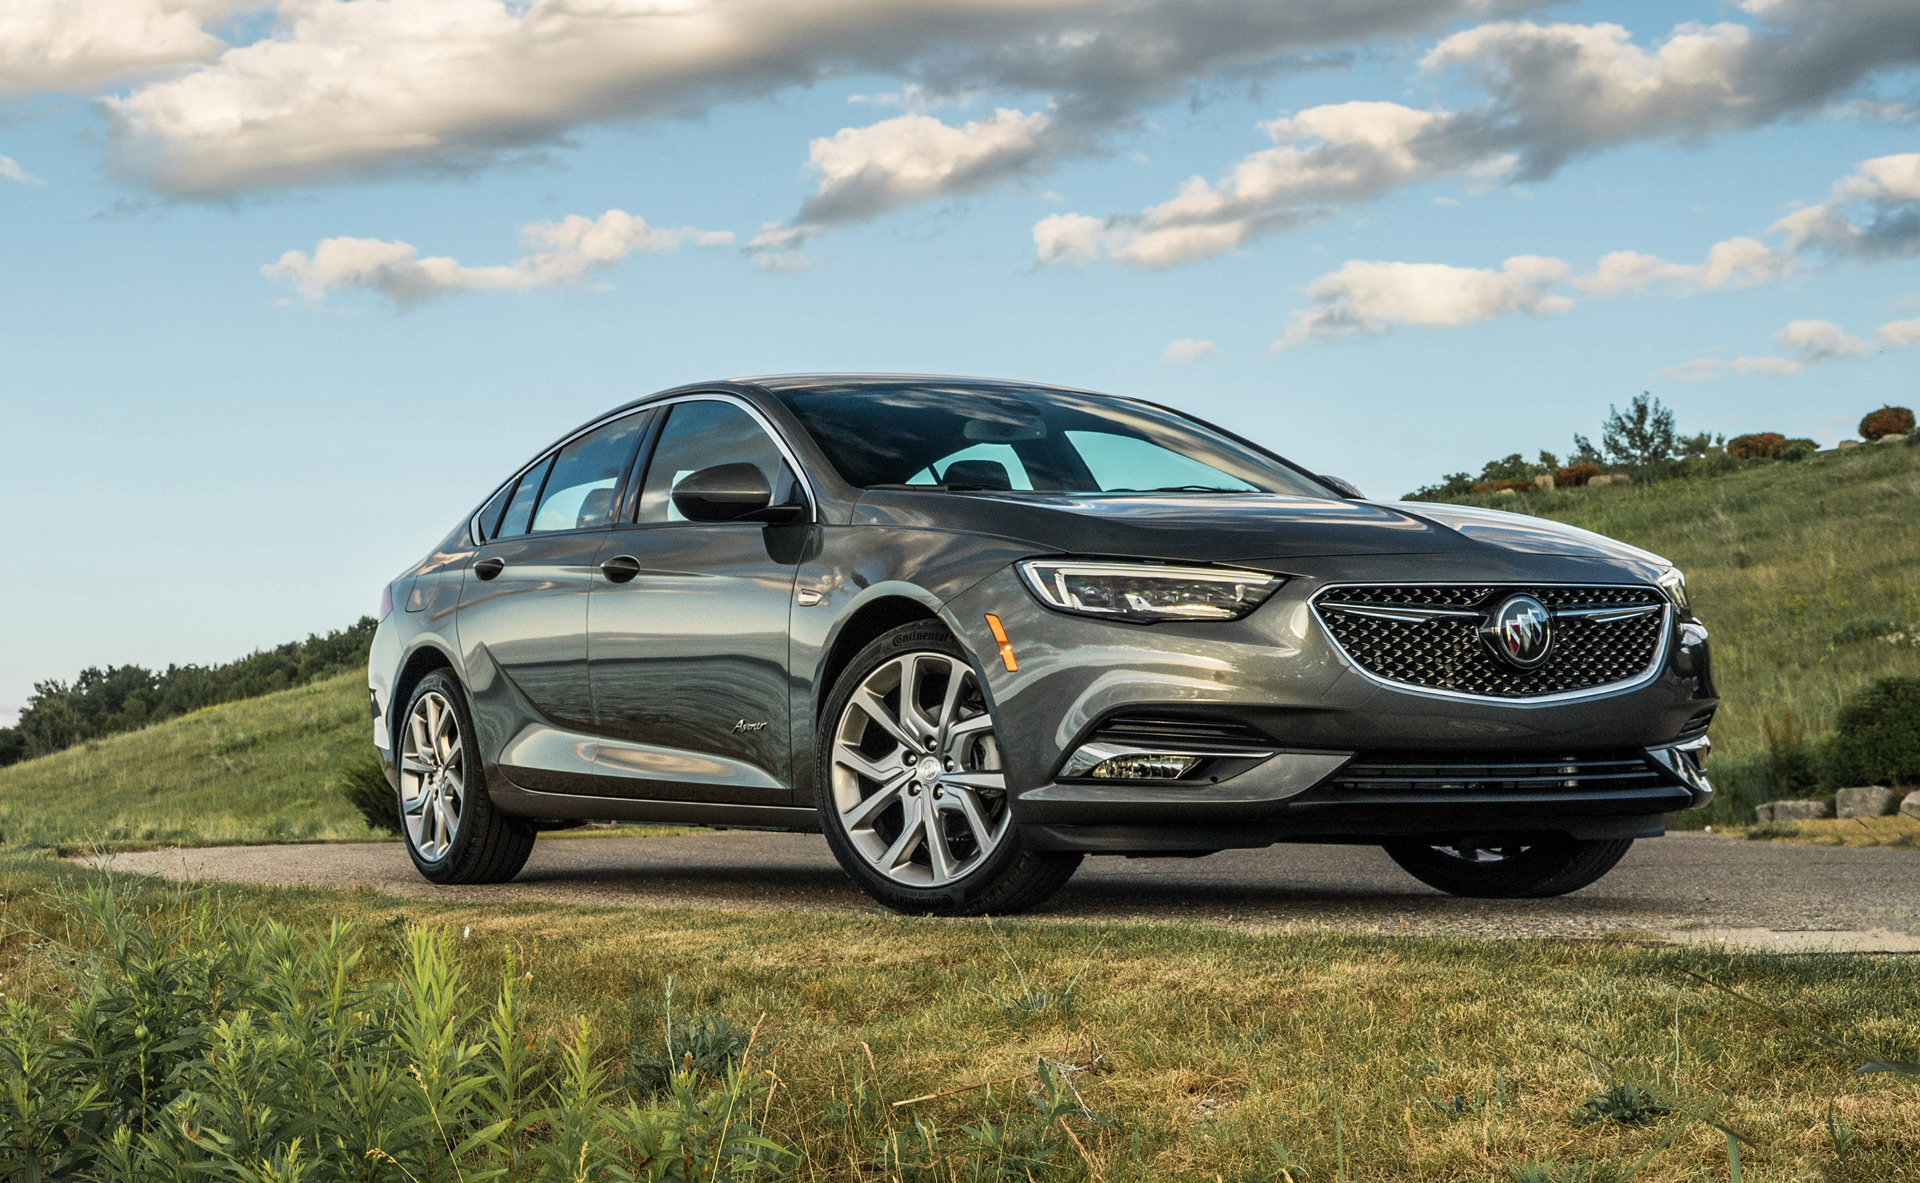 2019 Buick Regal Sportback Avenir: A Mid-Size, Full-Luxe 2022 Buick Regal Reviews, Images, Price